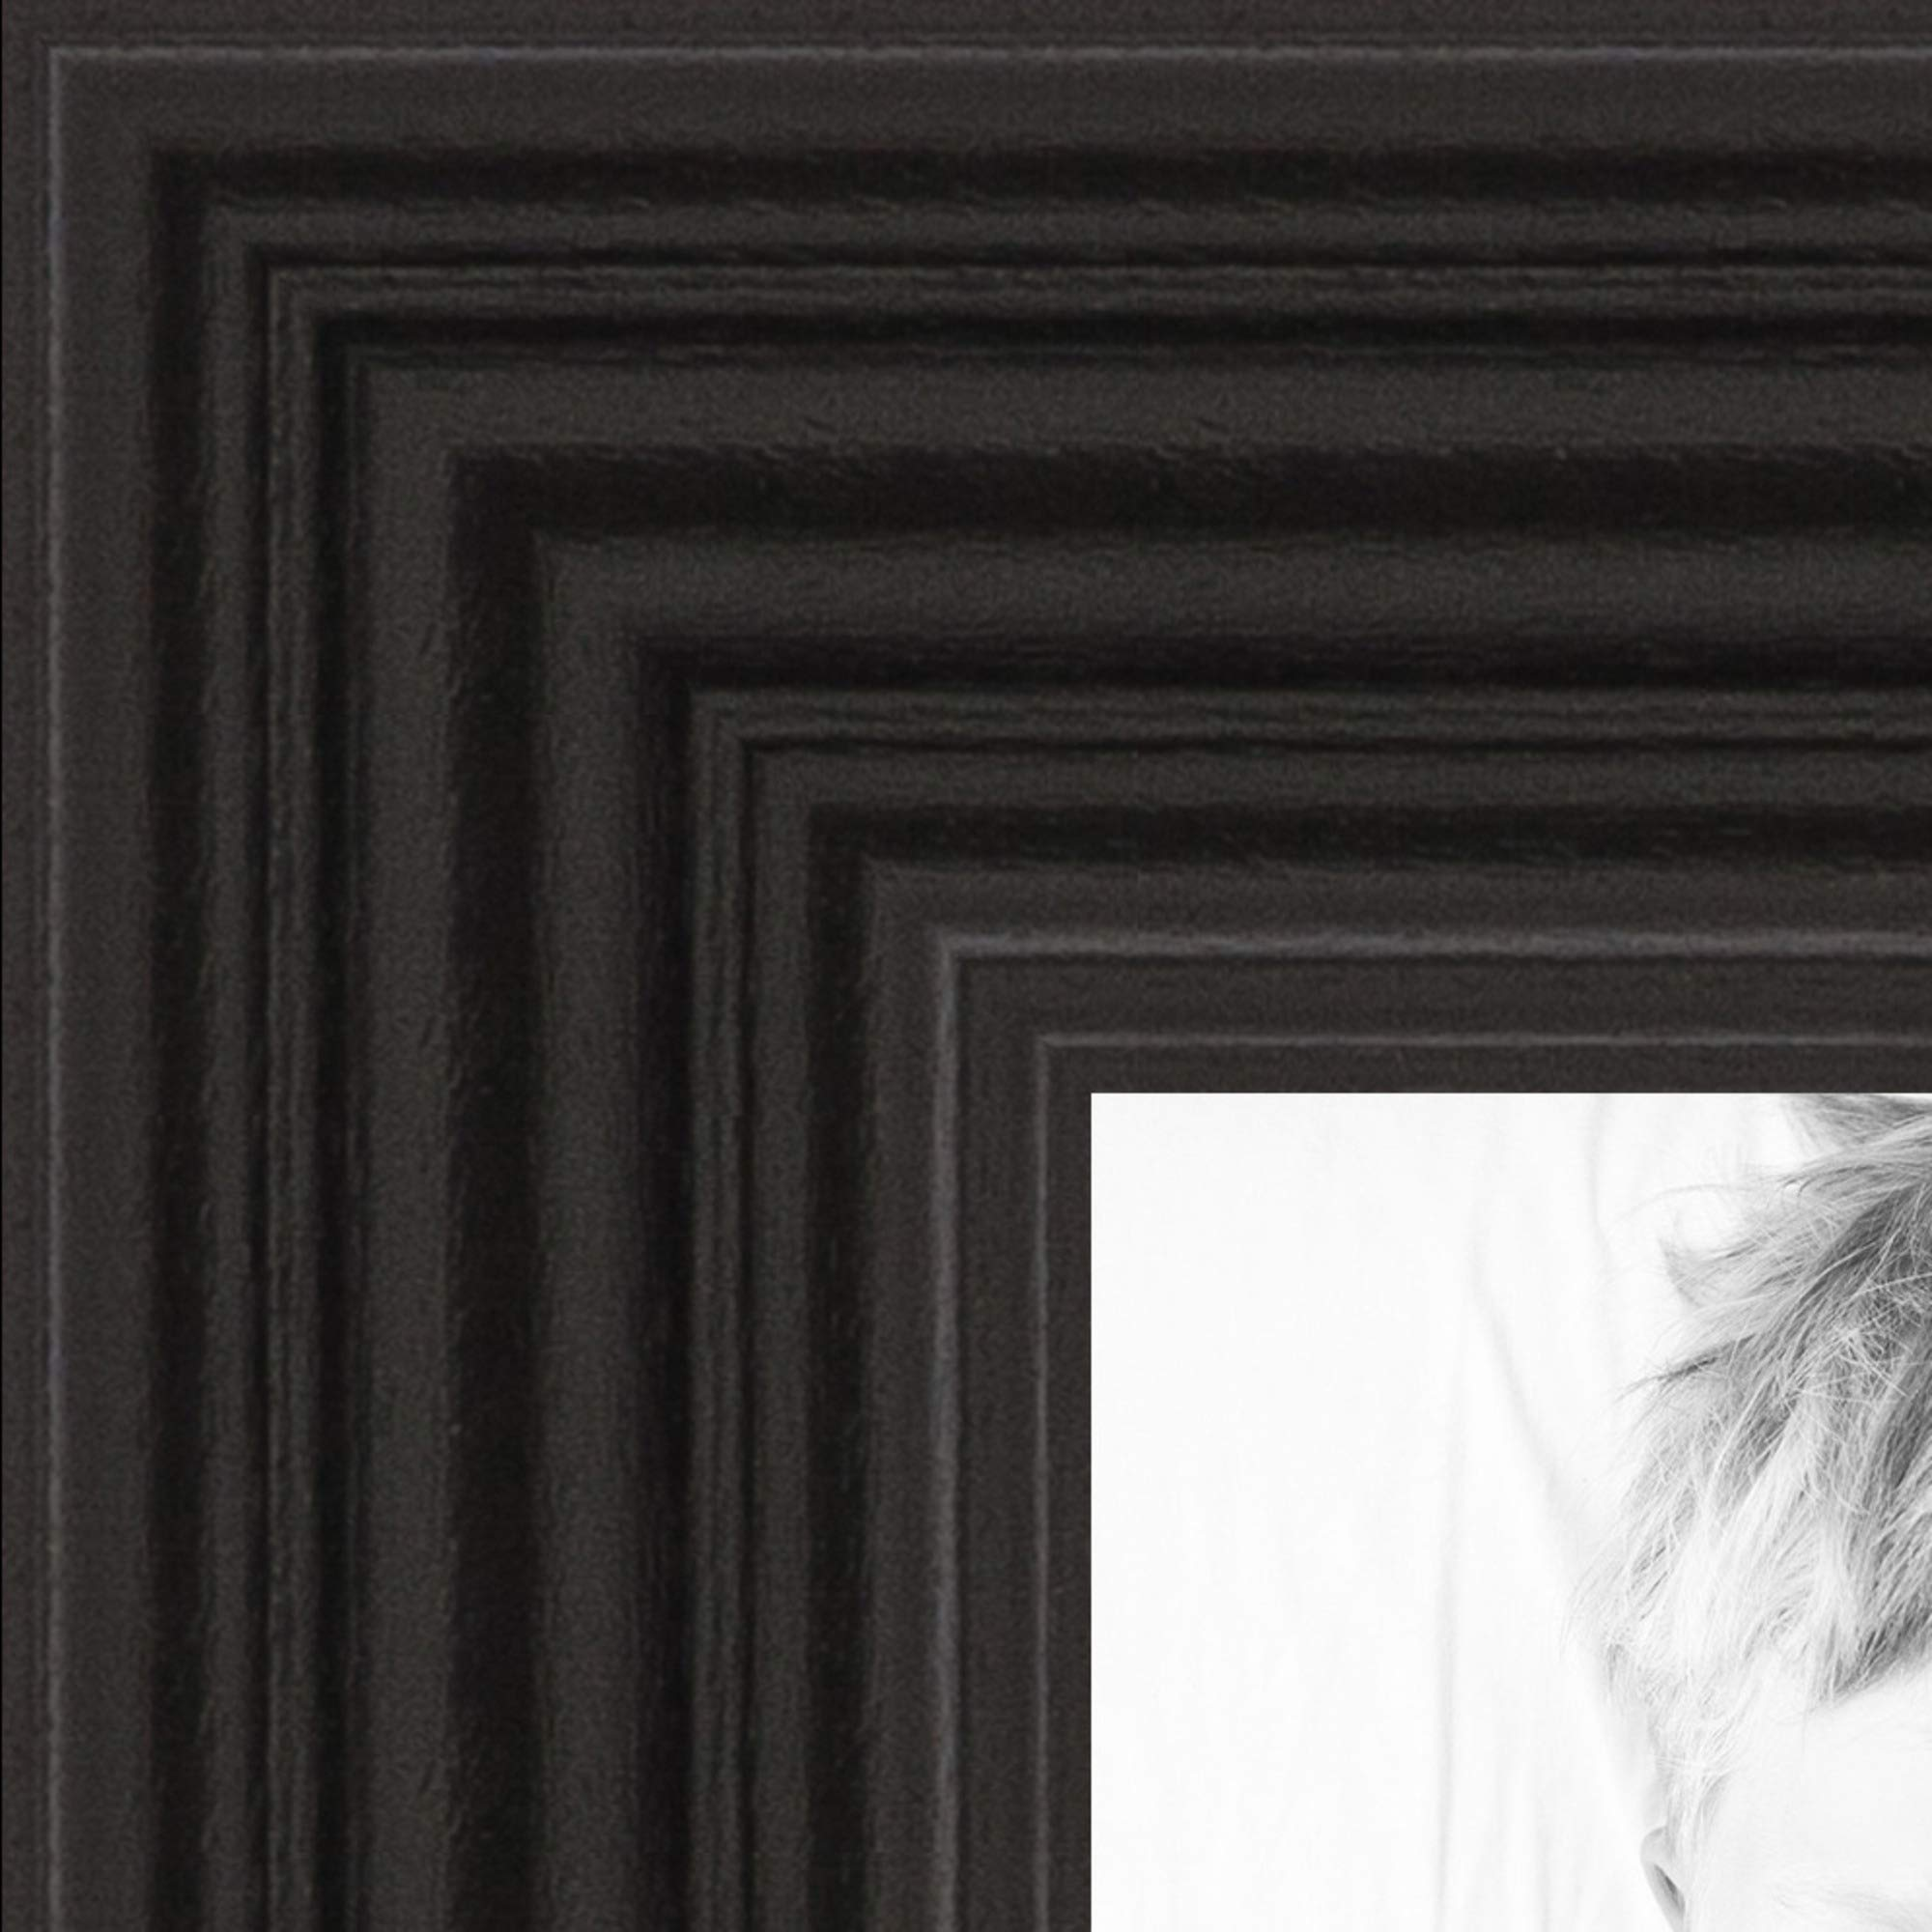 ArtToFrames 6x33 inch Black Stain on Red Leaf Maple Wood Picture Frame, 2WOM0066-60823-YBLK-6x33